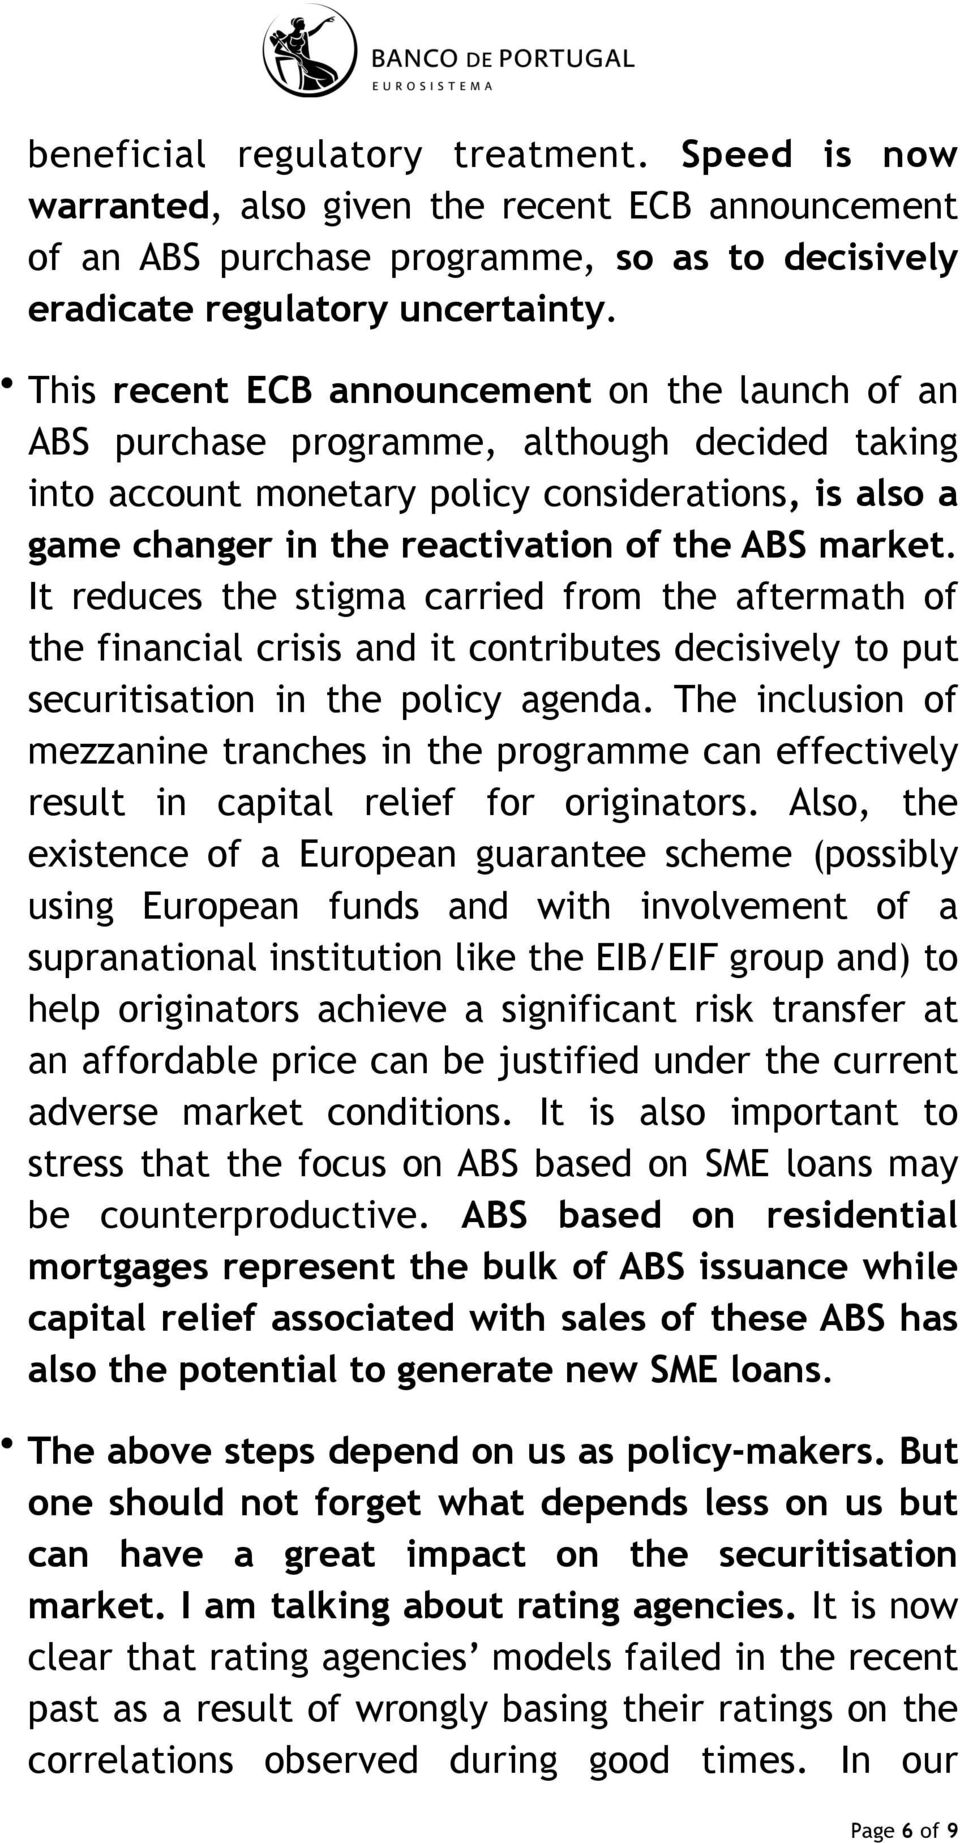 market. It reduces the stigma carried from the aftermath of the financial crisis and it contributes decisively to put securitisation in the policy agenda.